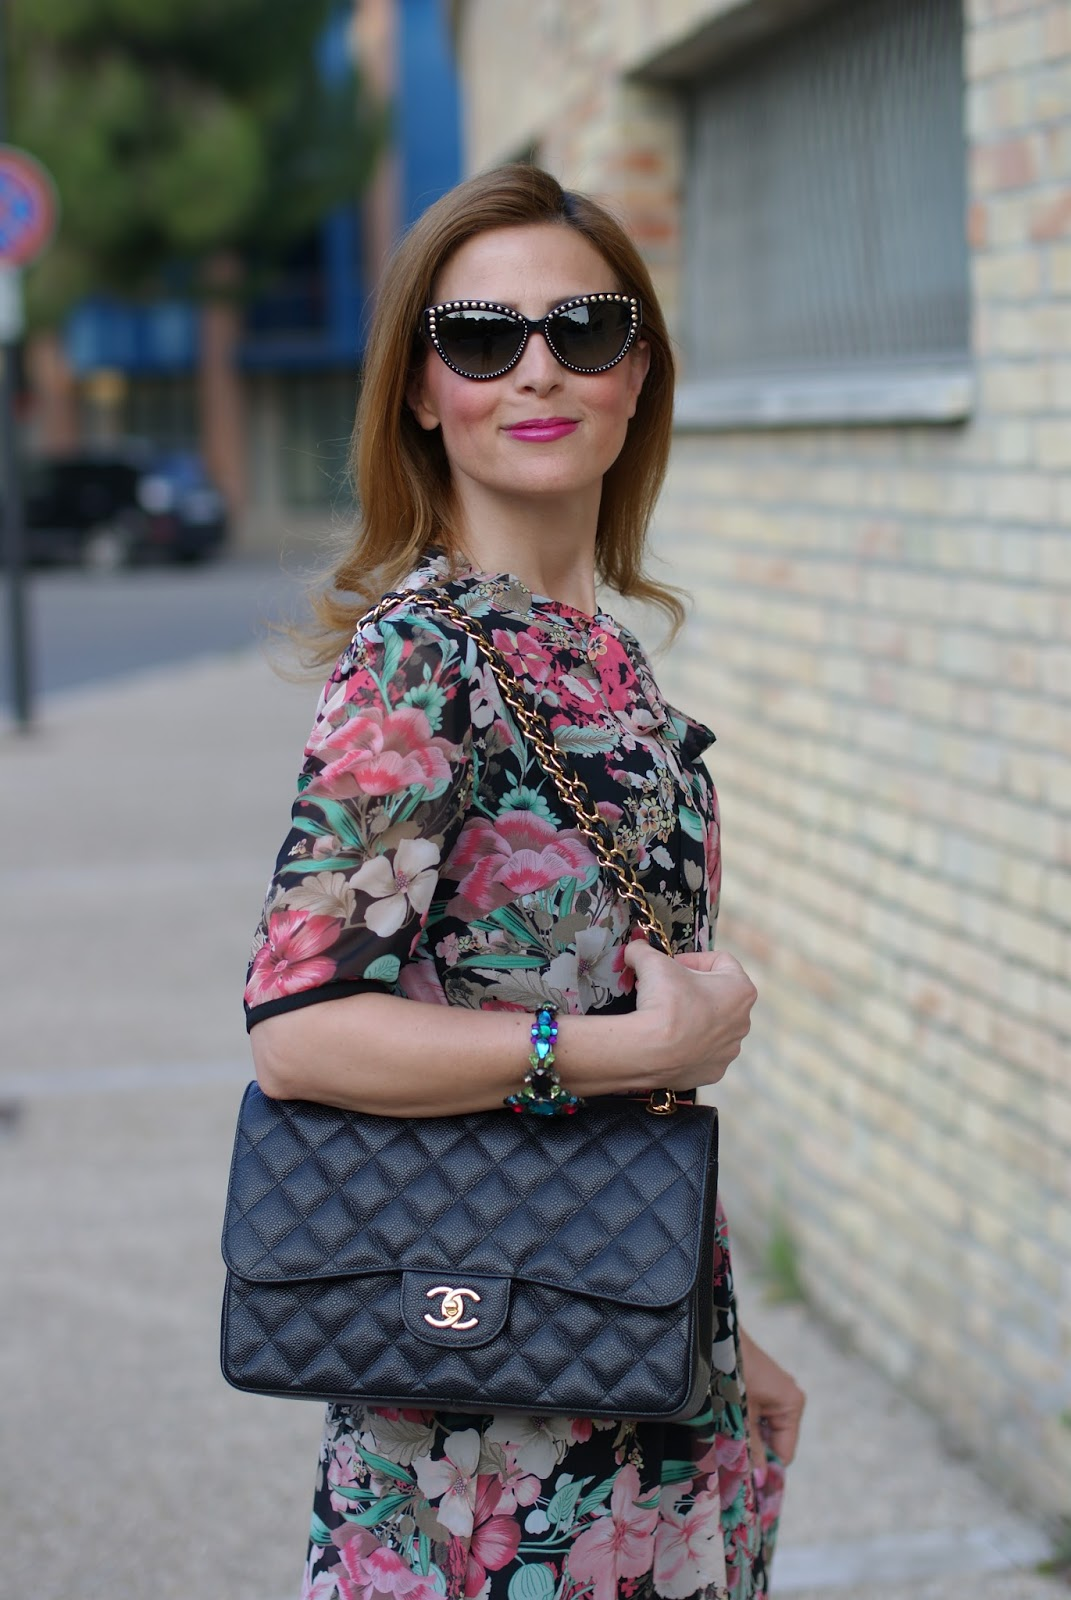 Floral bon ton dress with Chanel 2.55 bag on Fashion and Cookies fashion blog, fashion blogger style